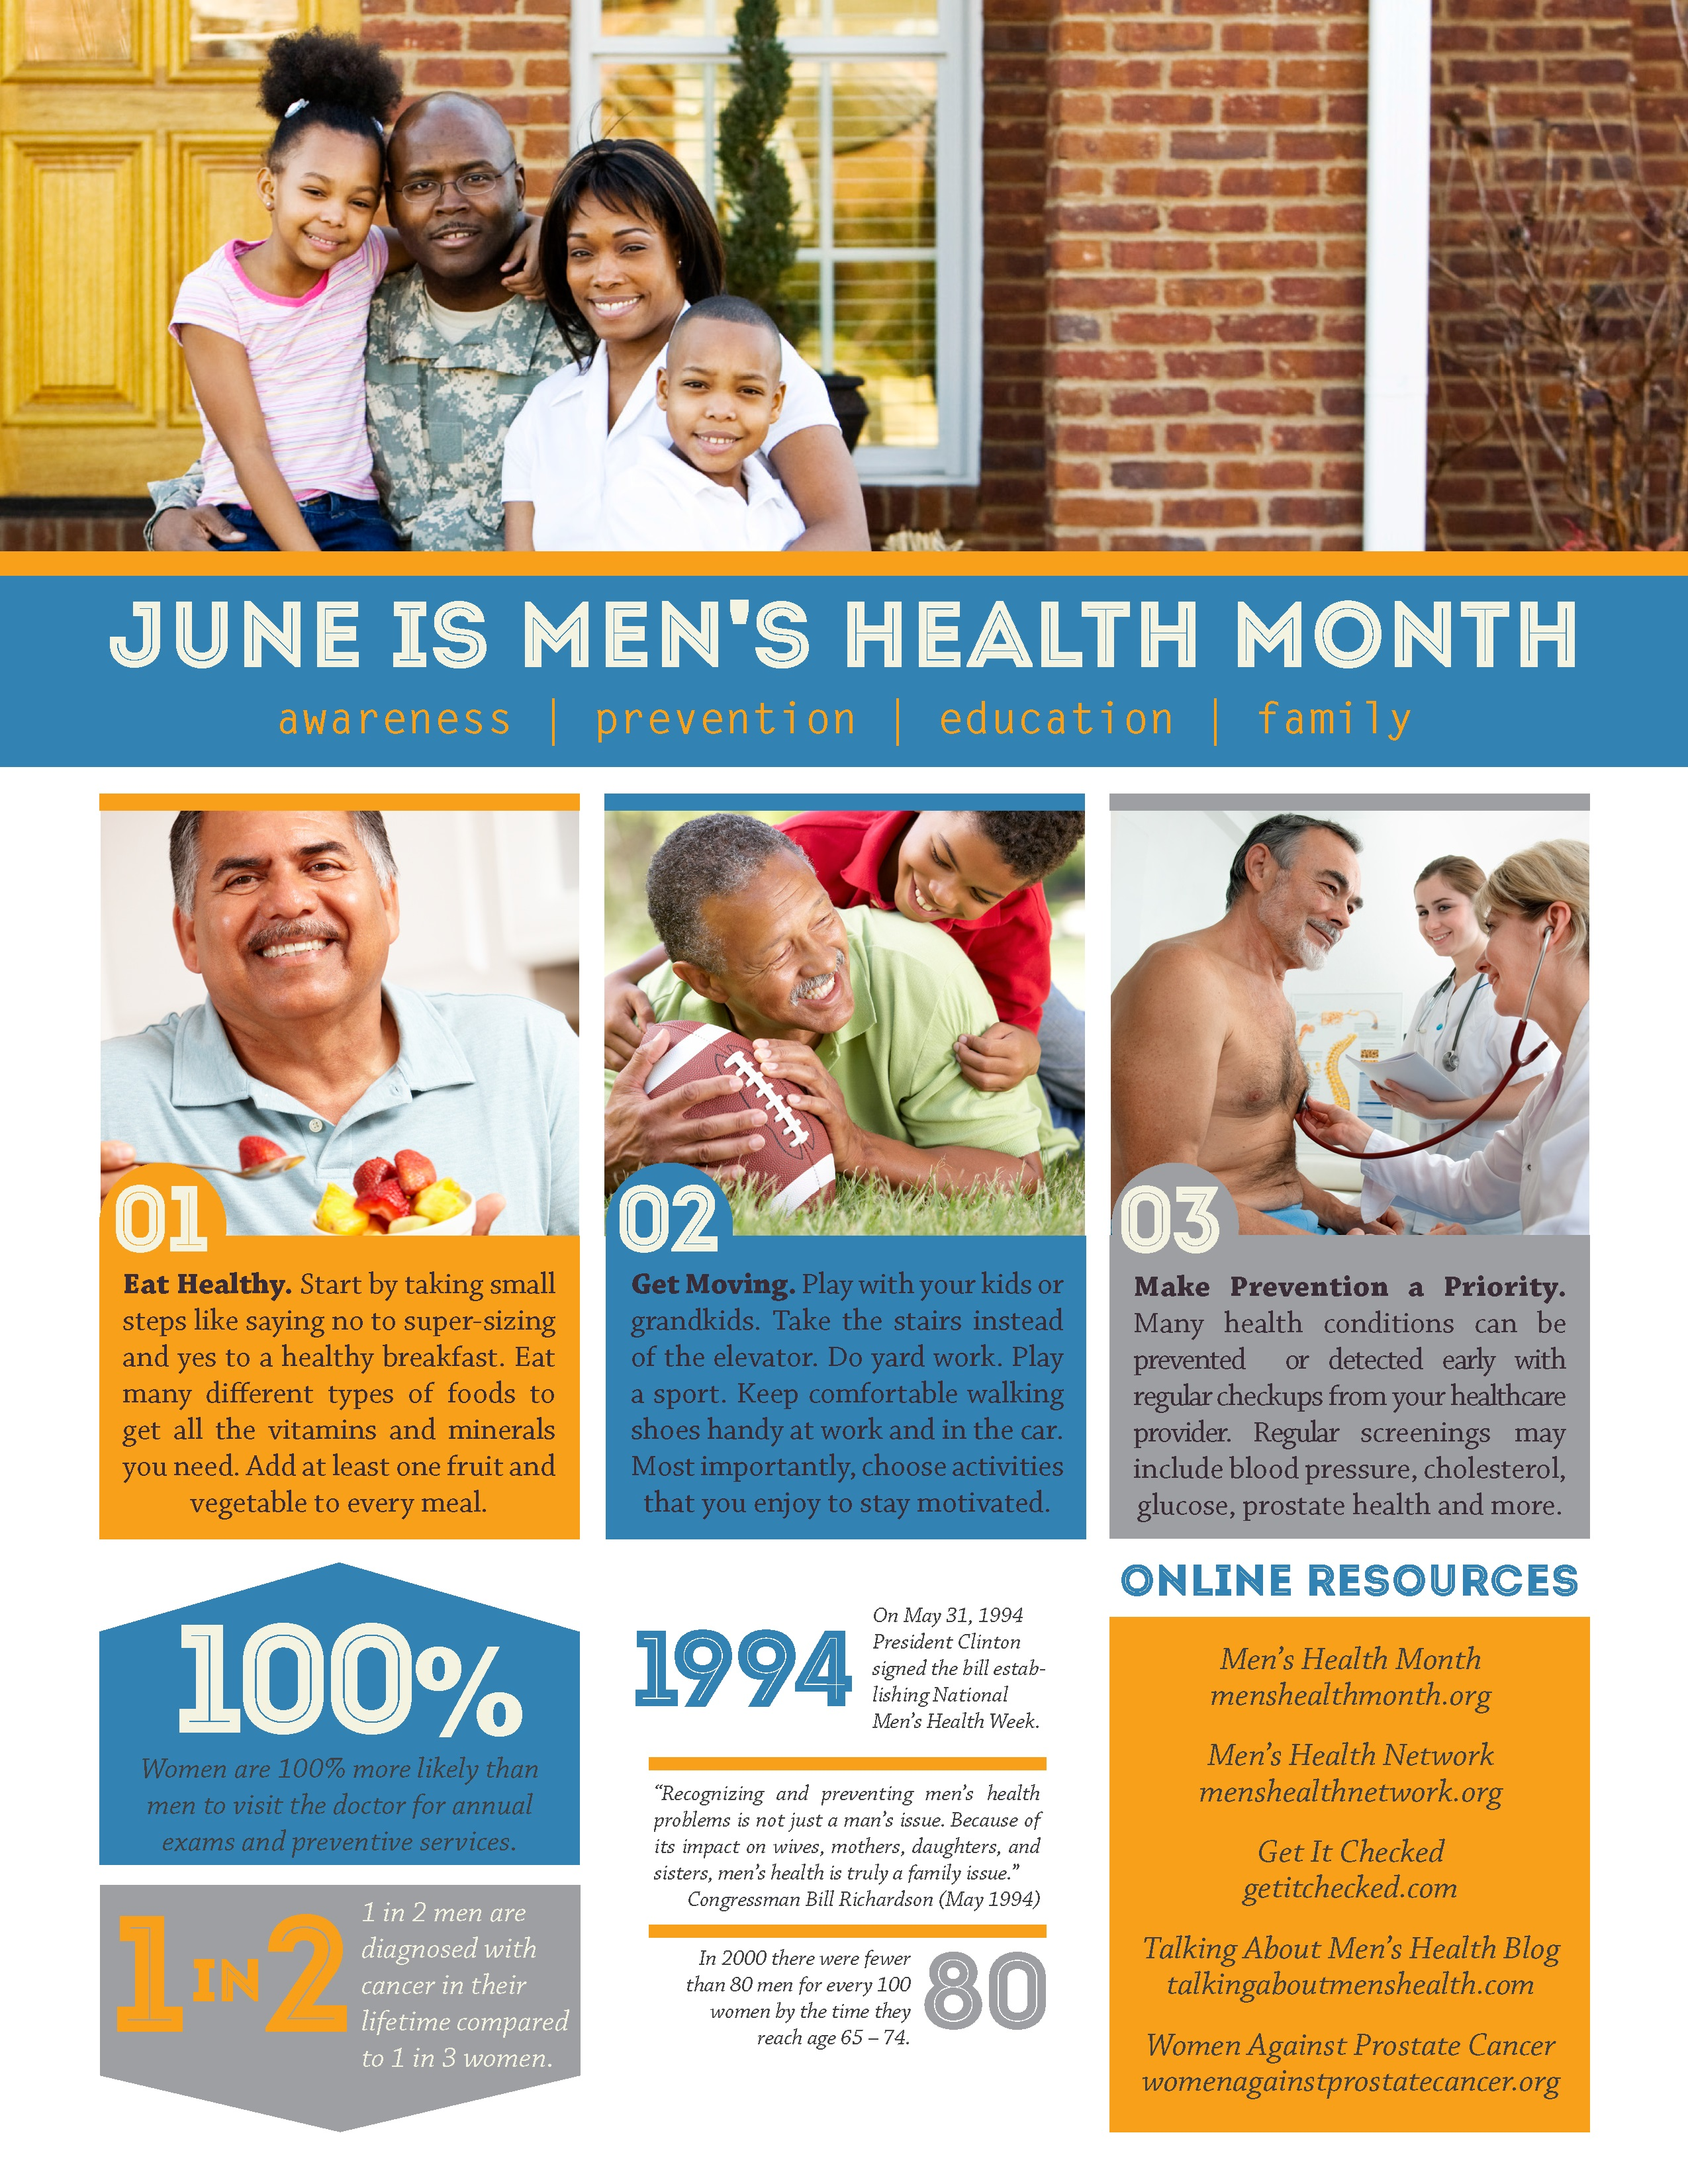 June is Men's Health Month, Learn more with Magellan Health